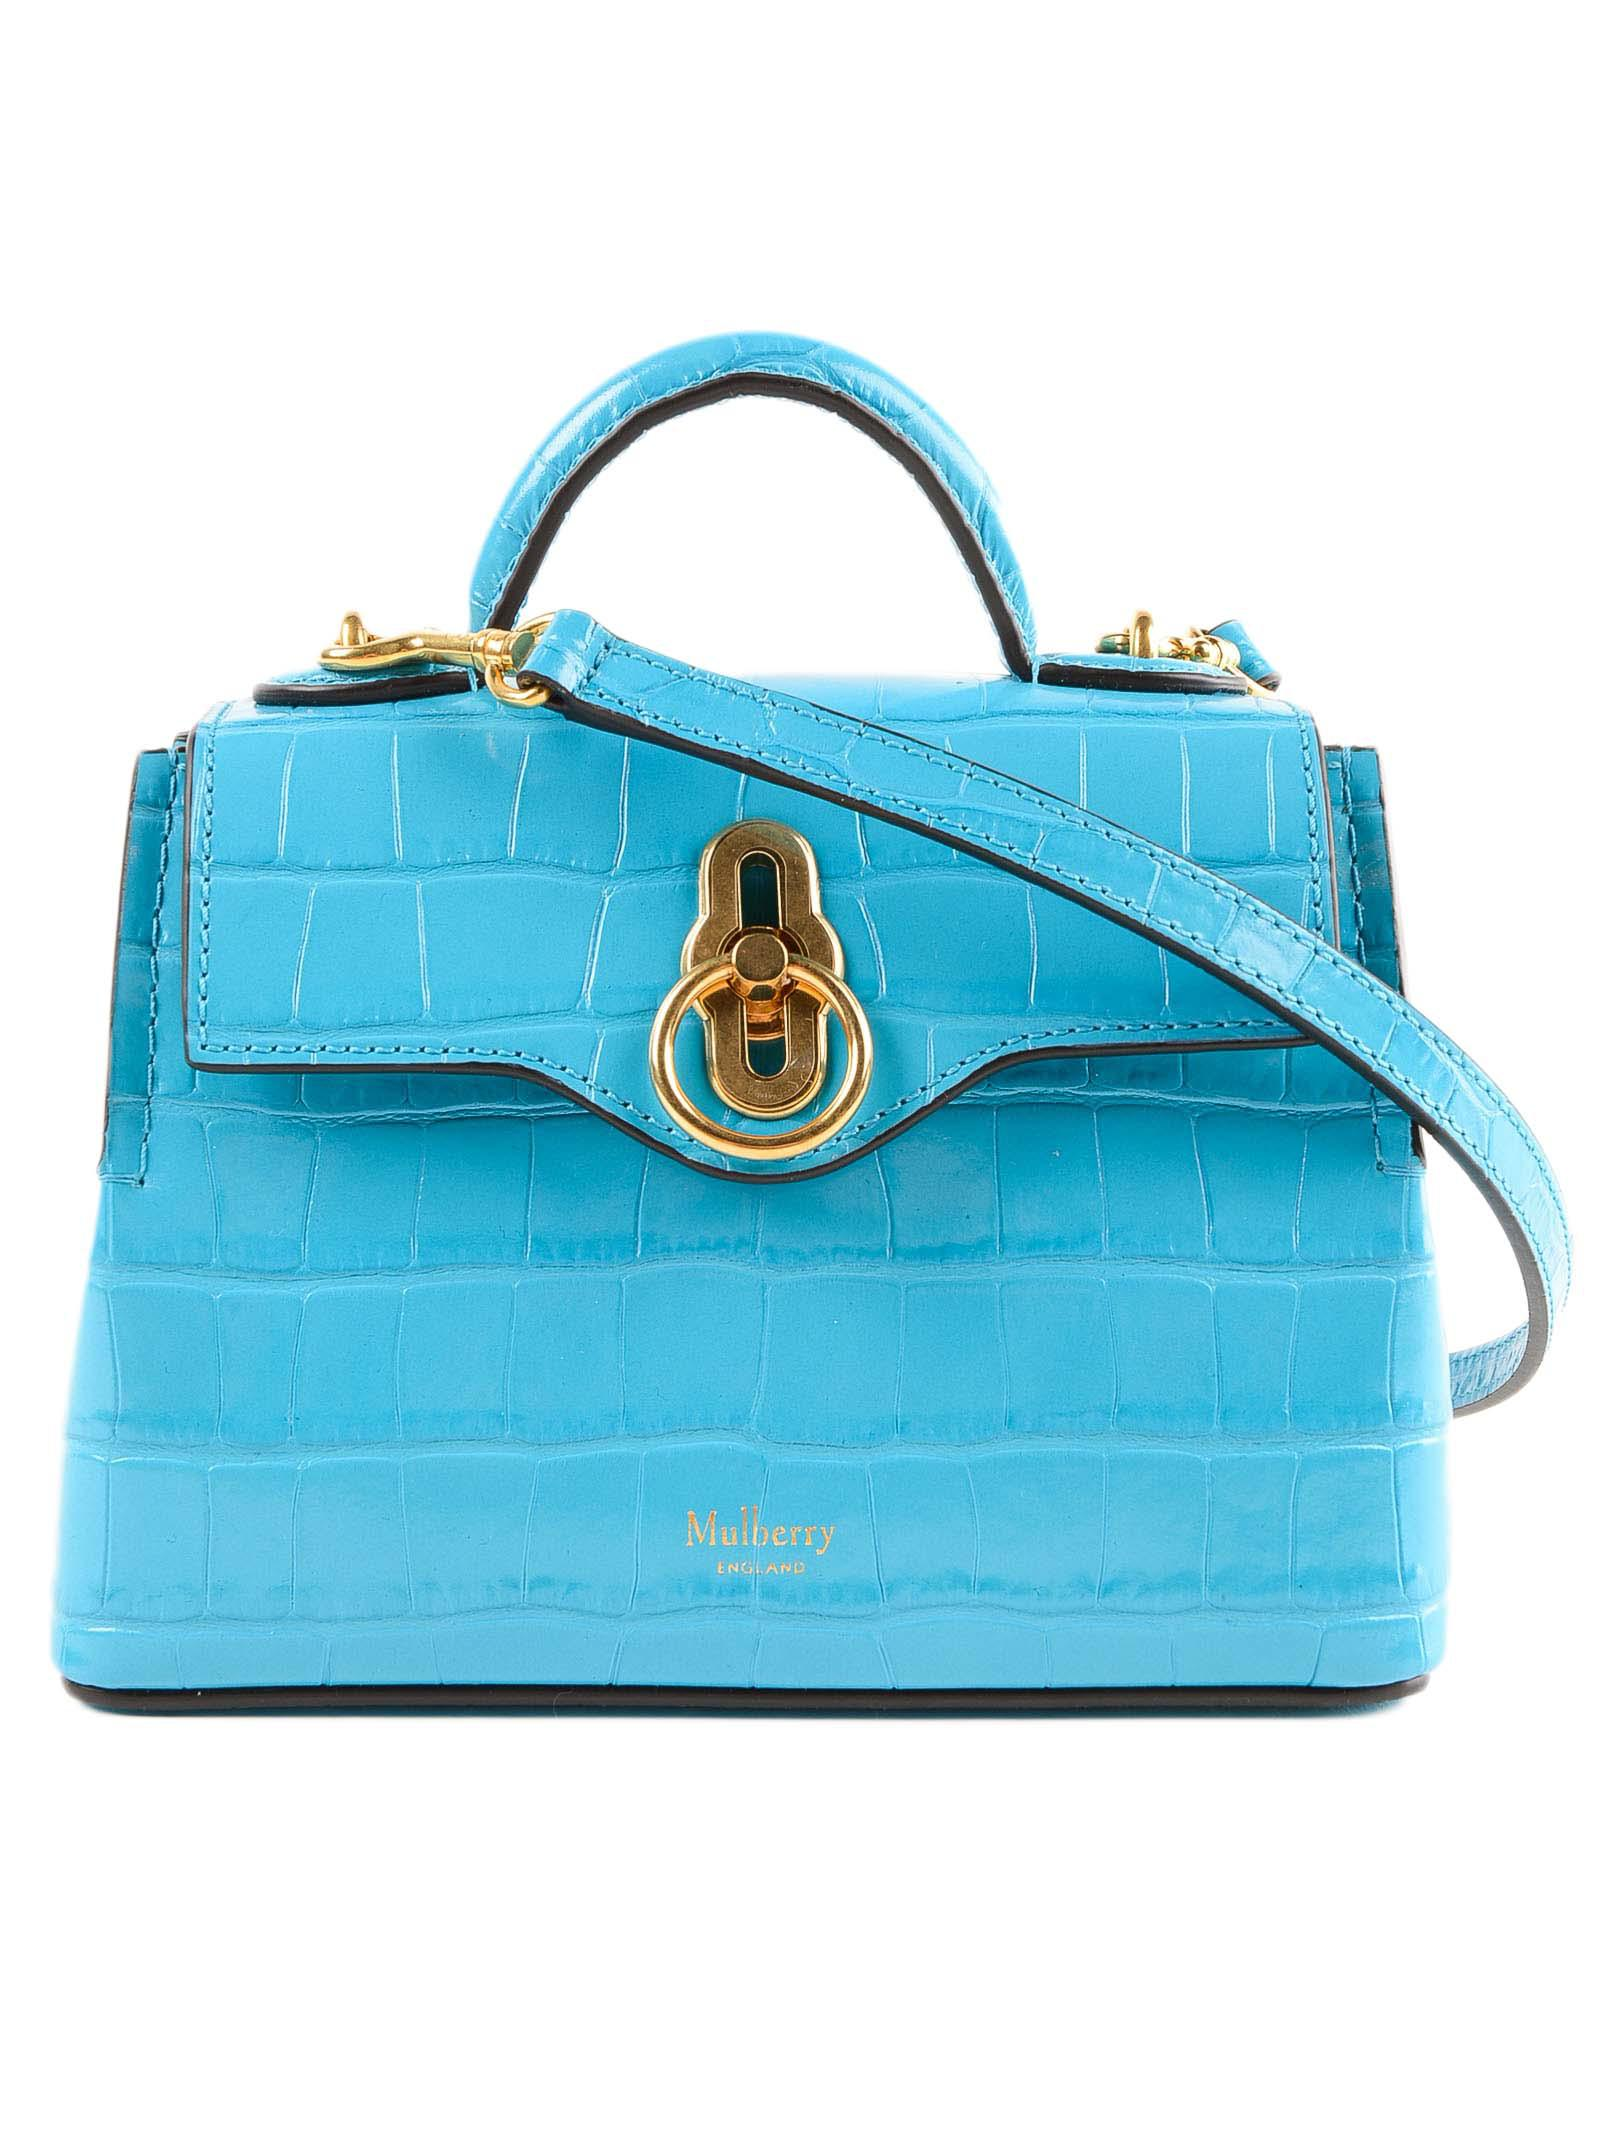 Lyst - Mulberry Micro Seaton Bag in Blue 6ef6071184c6e